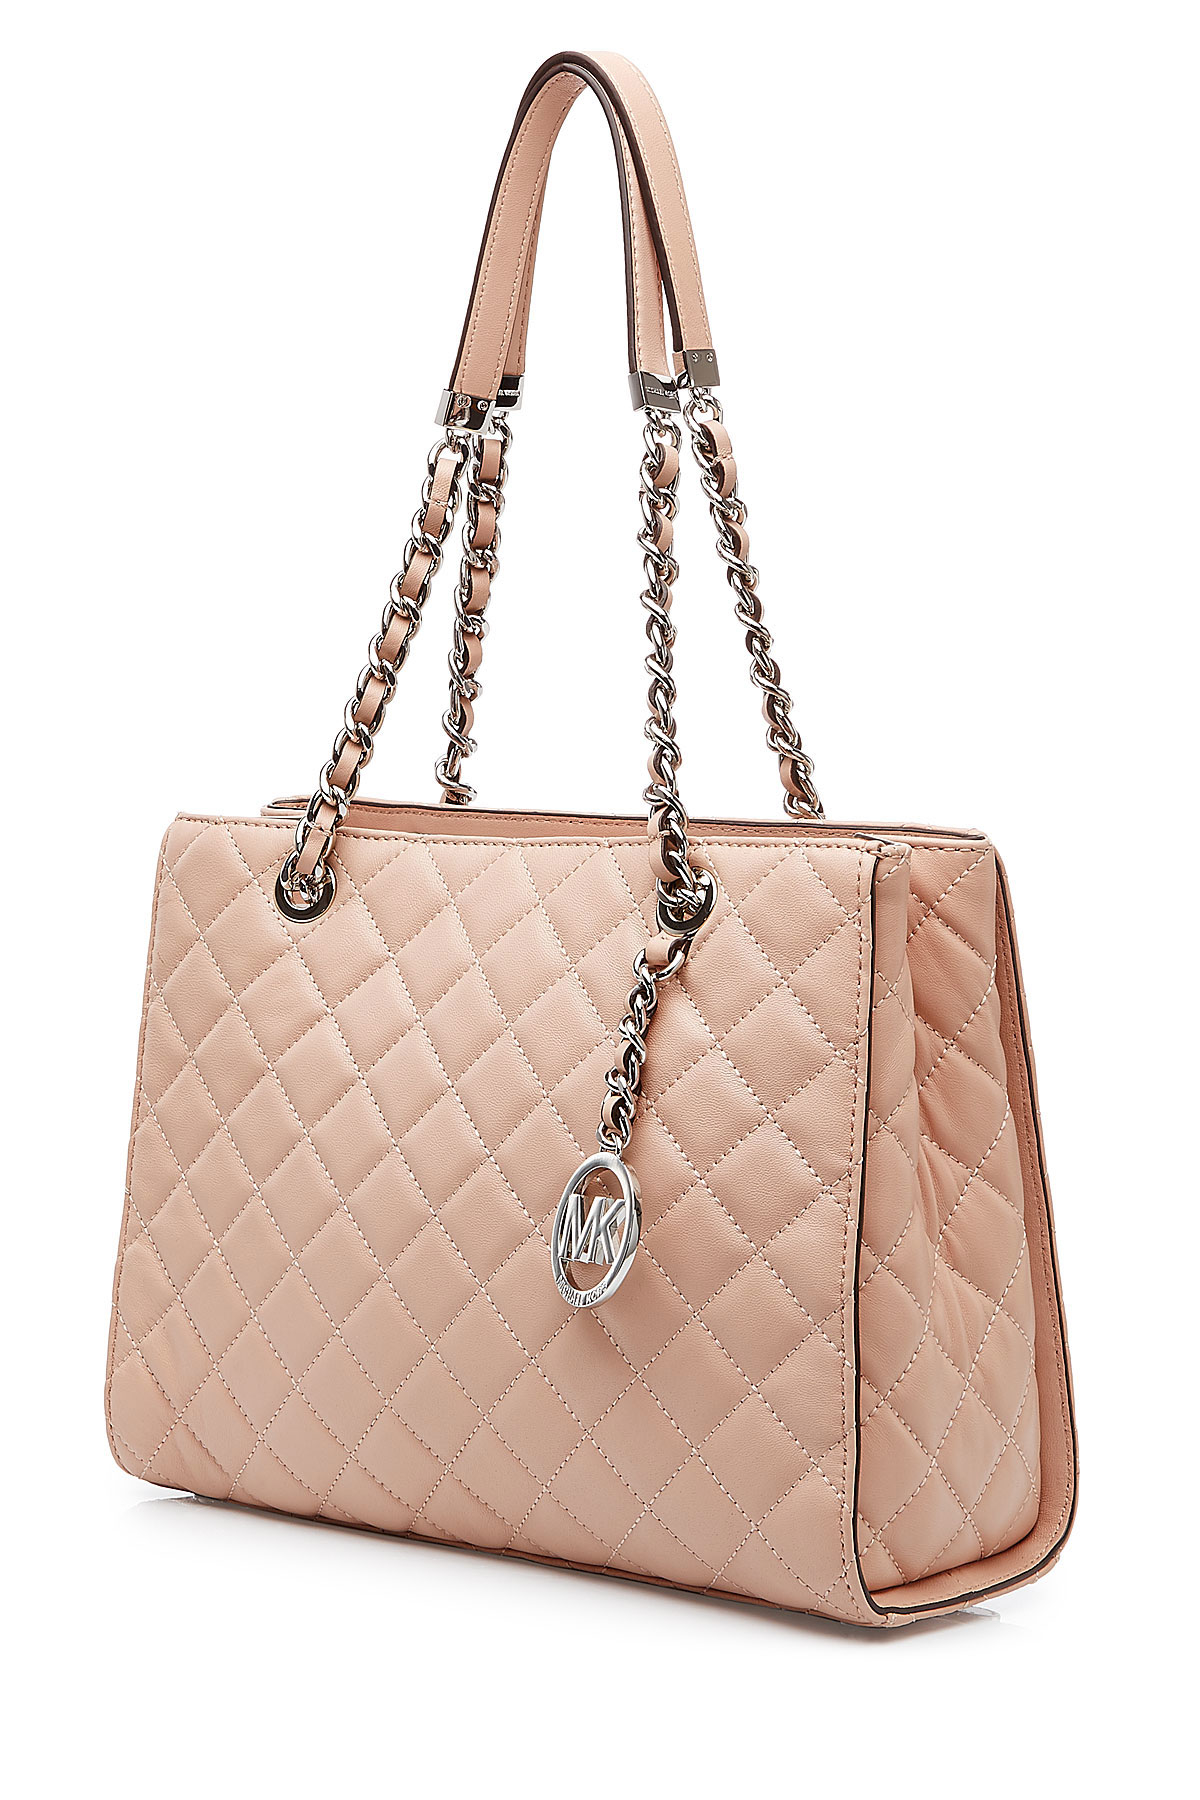 9c71f6d32ff4 Michael Kors Susannah Quilted Shoulder Bag | Stanford Center for ...